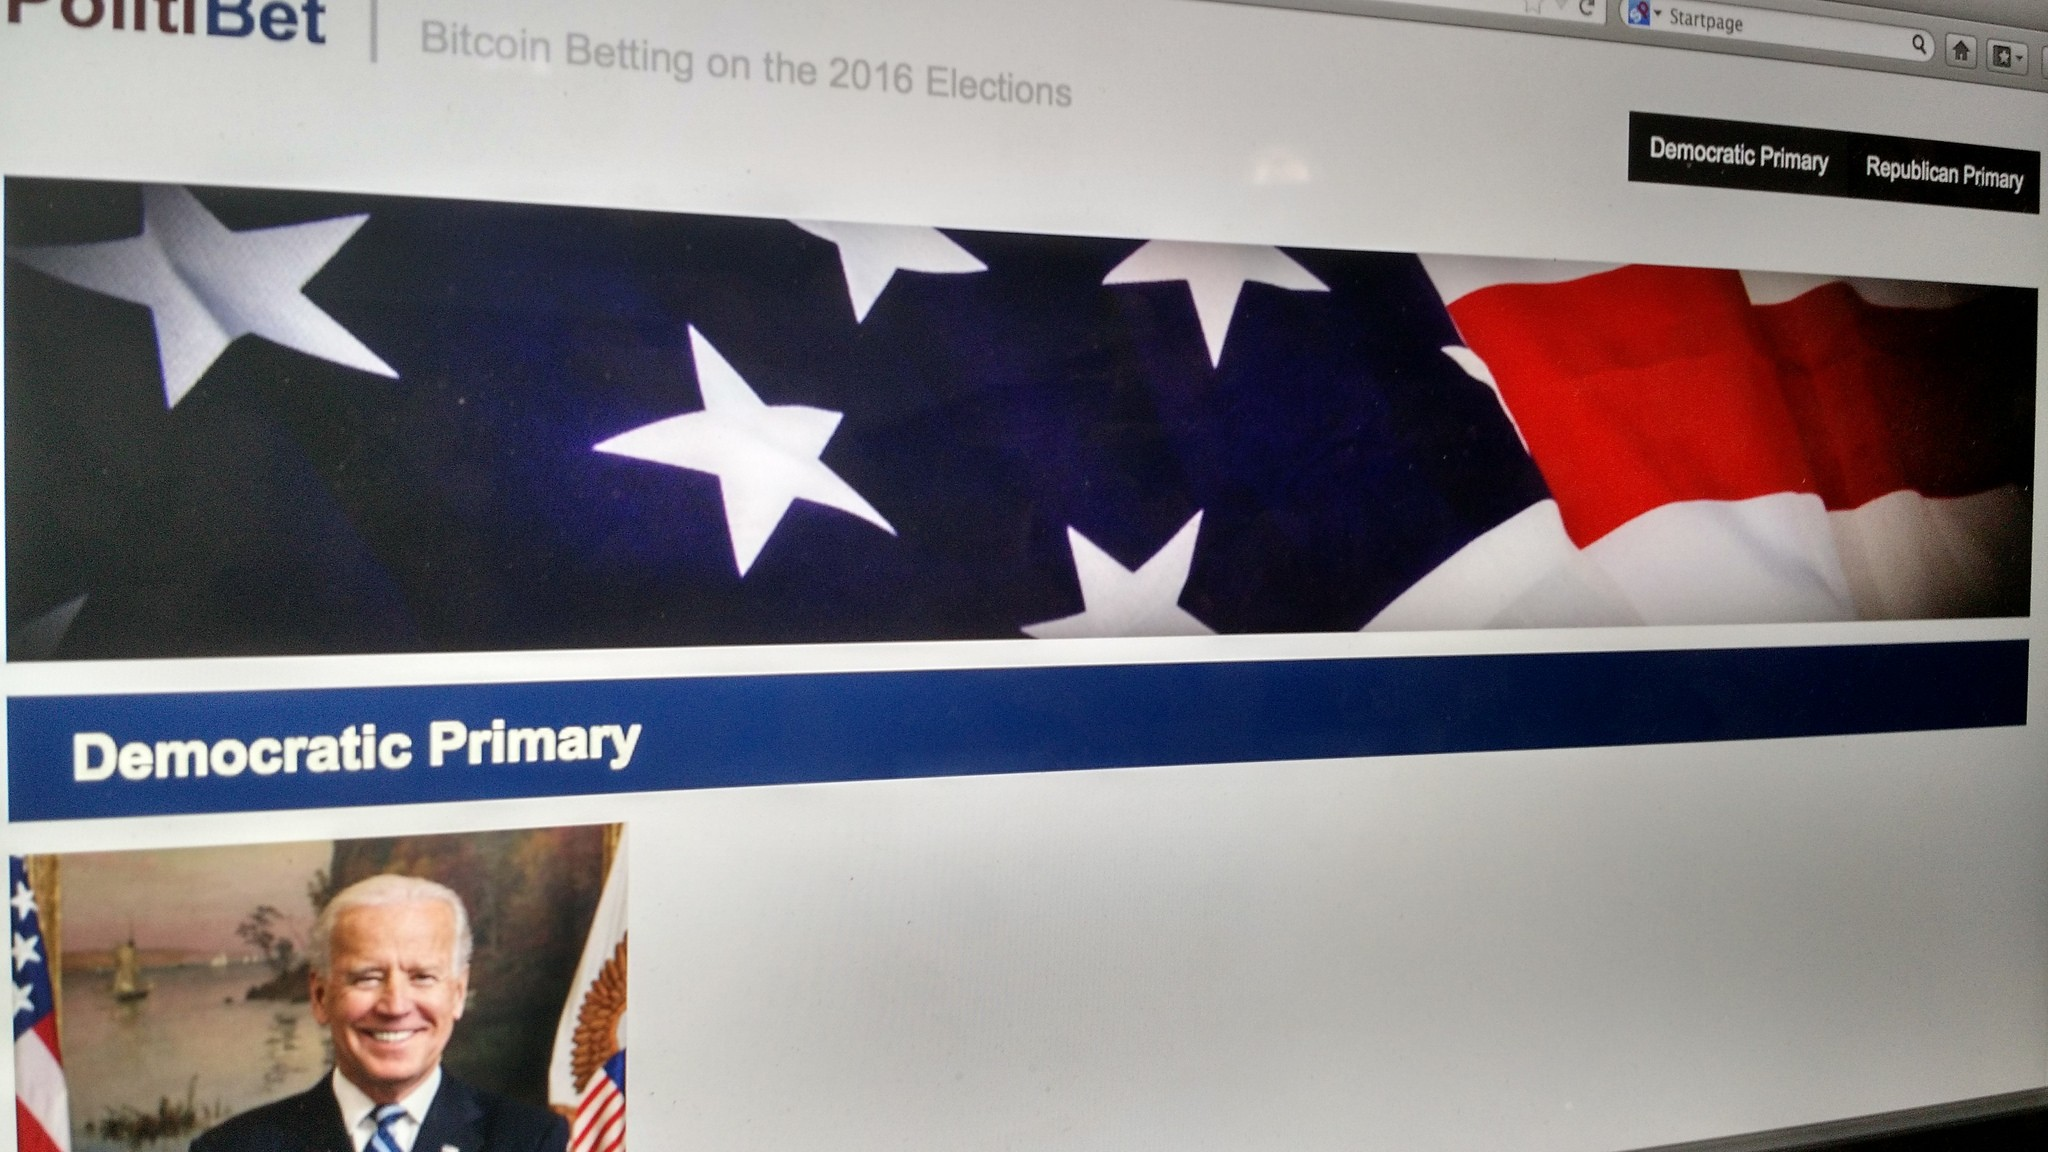 This New Deep Web Site Is Already Taking Bets on the 2016 US Election